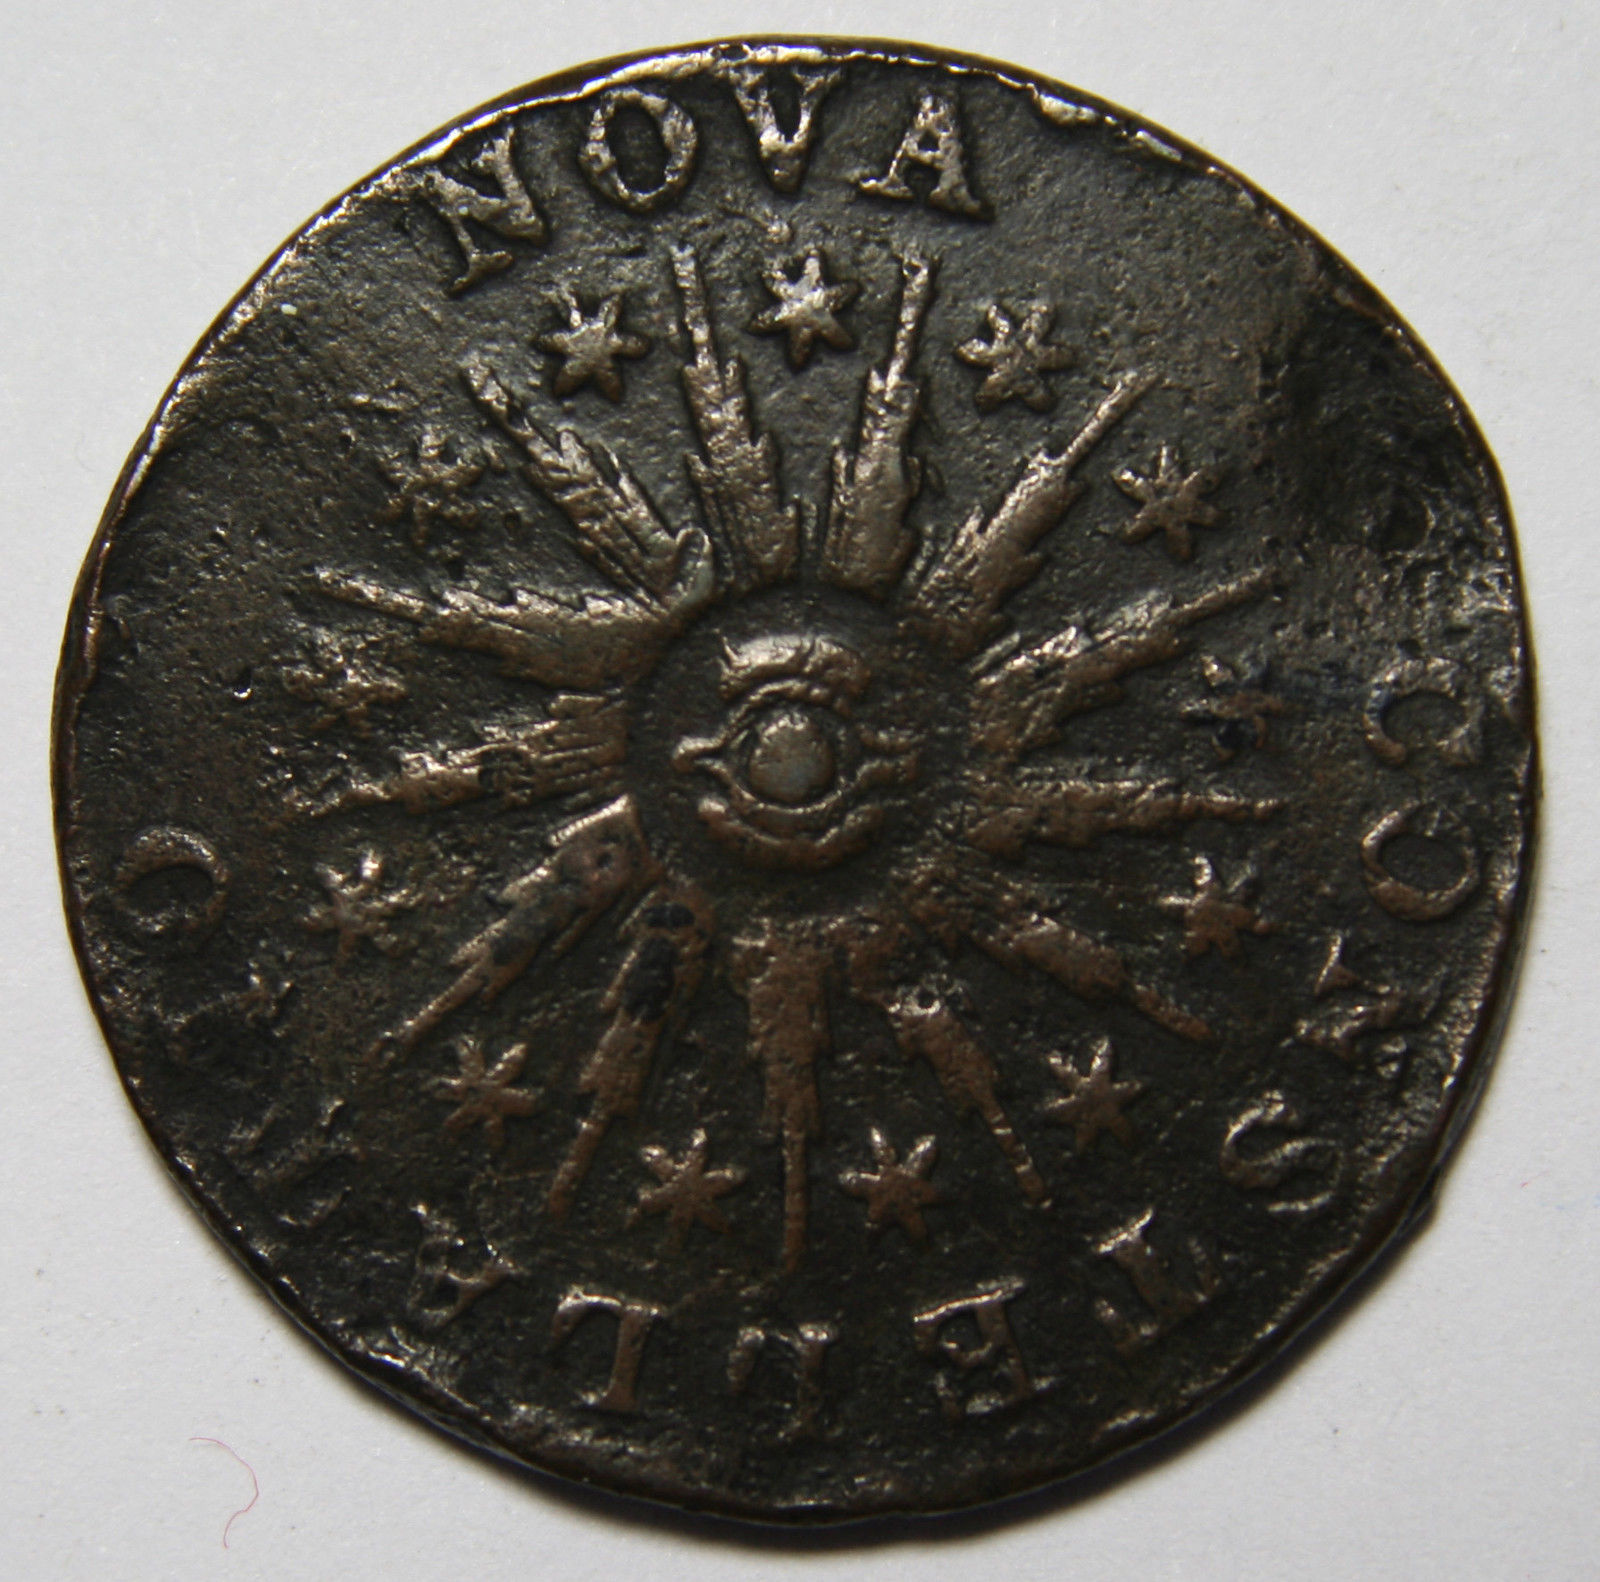 1785 Constellatio Copper Colonial Nova Pointed Ray Coin Lot # MZ 3930